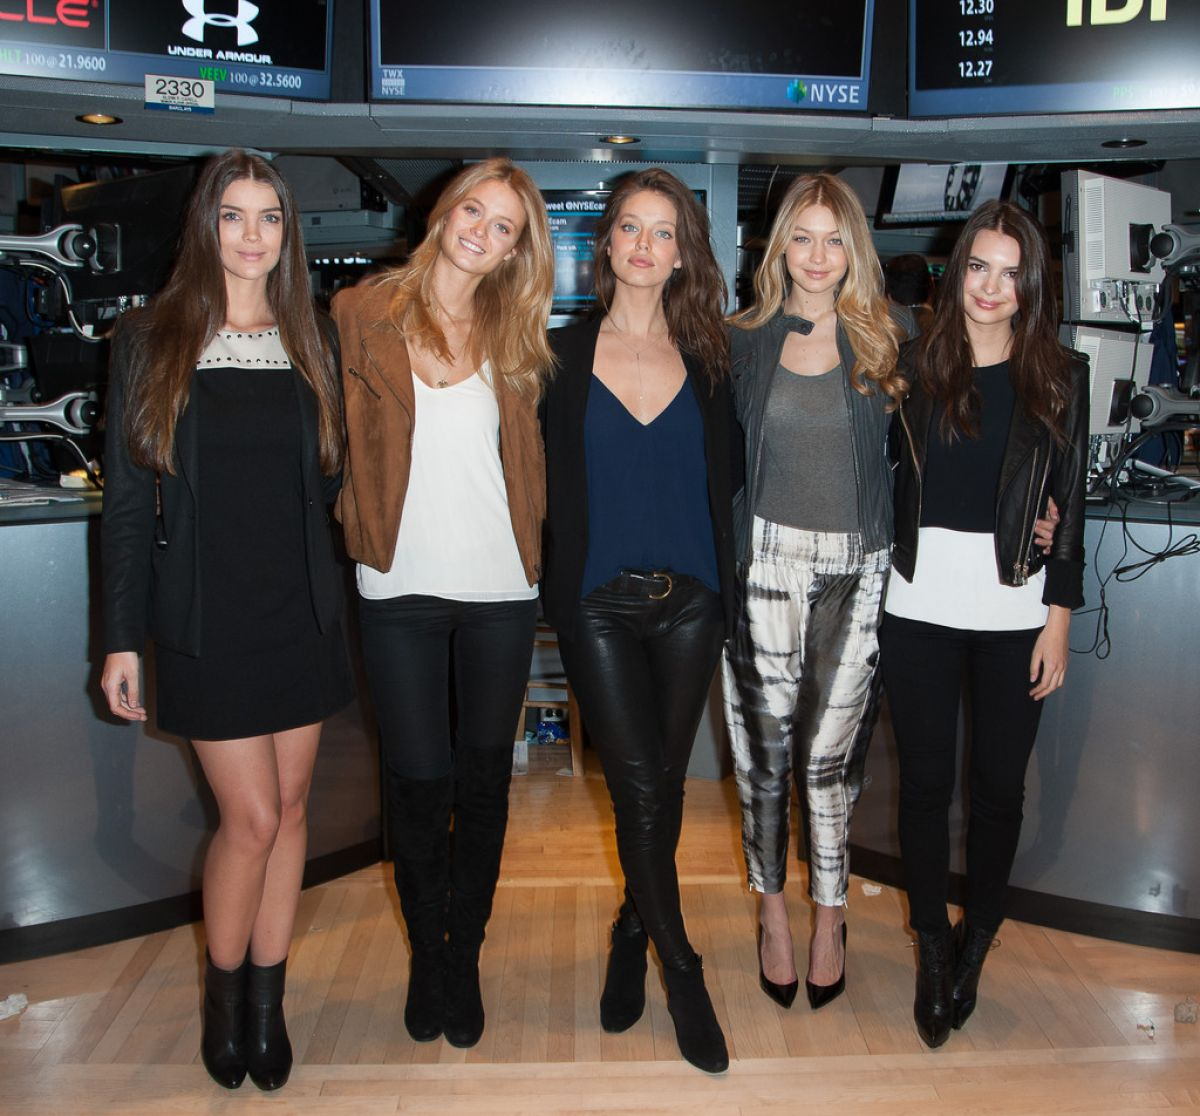 Petite Mademoiselle ✖ »Dess's Instagram« Emily-ratajkowski-gigi-hadid-kate-bock-natasha-barnard-and-emily-didonato-rings-the-closing-bell-at-the-new-york-stock-exchange_1